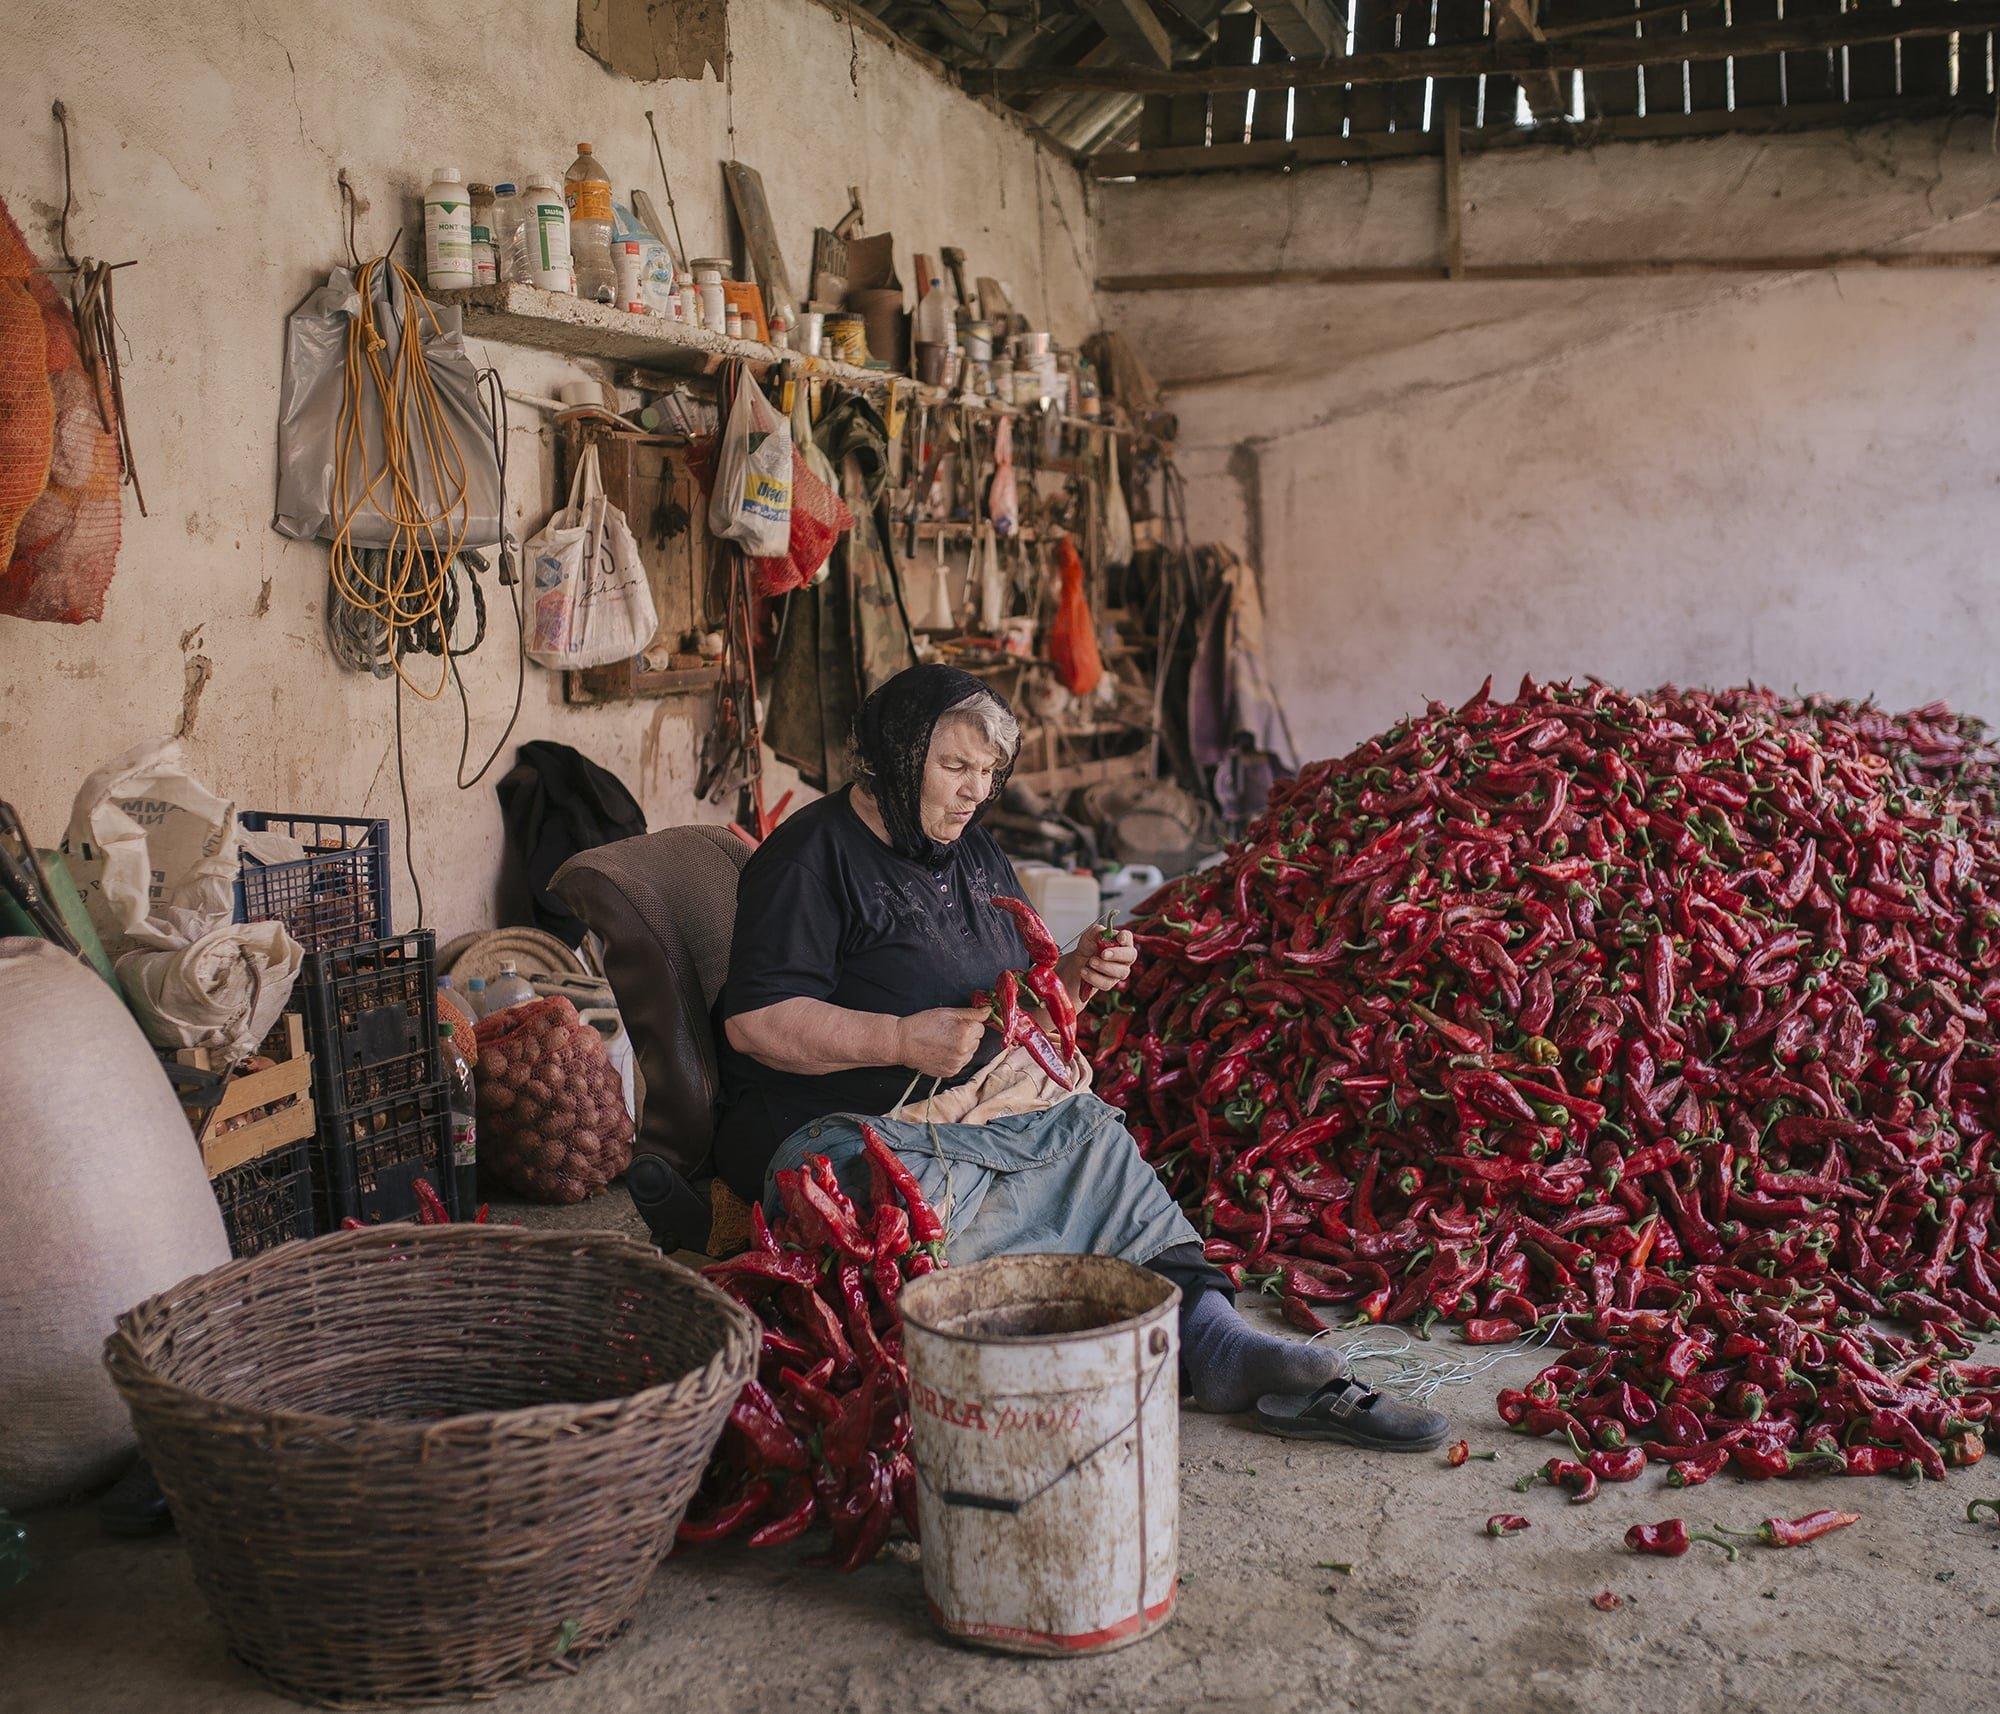 Serbia's Red Gold Pepper Harvest